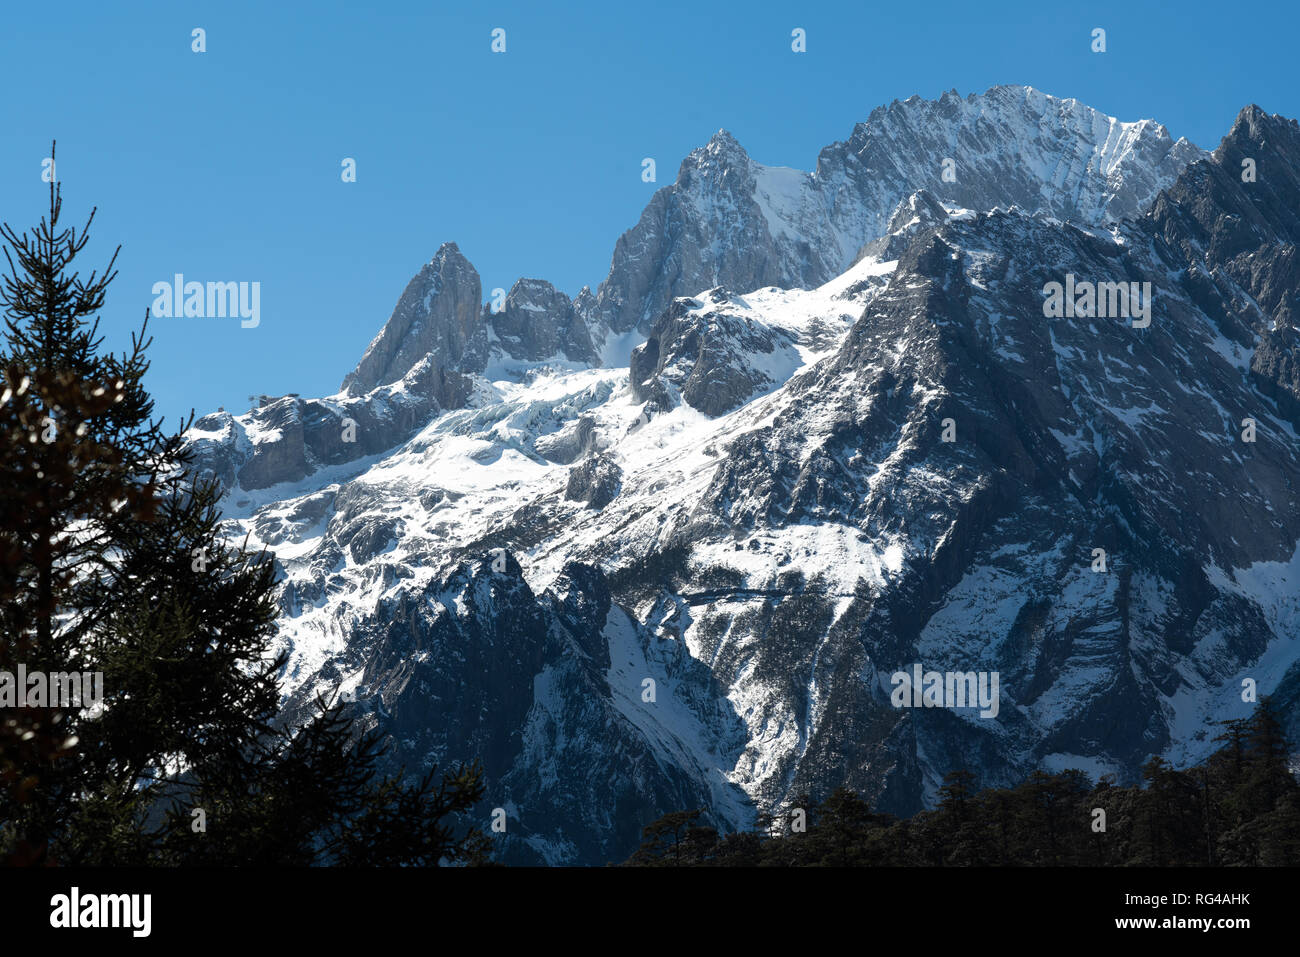 Jade dragon snow mountain situated in Yulong, Yunnan China. The snow covered mountain with rocky peaks with trees in the foreground giving a dramatic - Stock Image